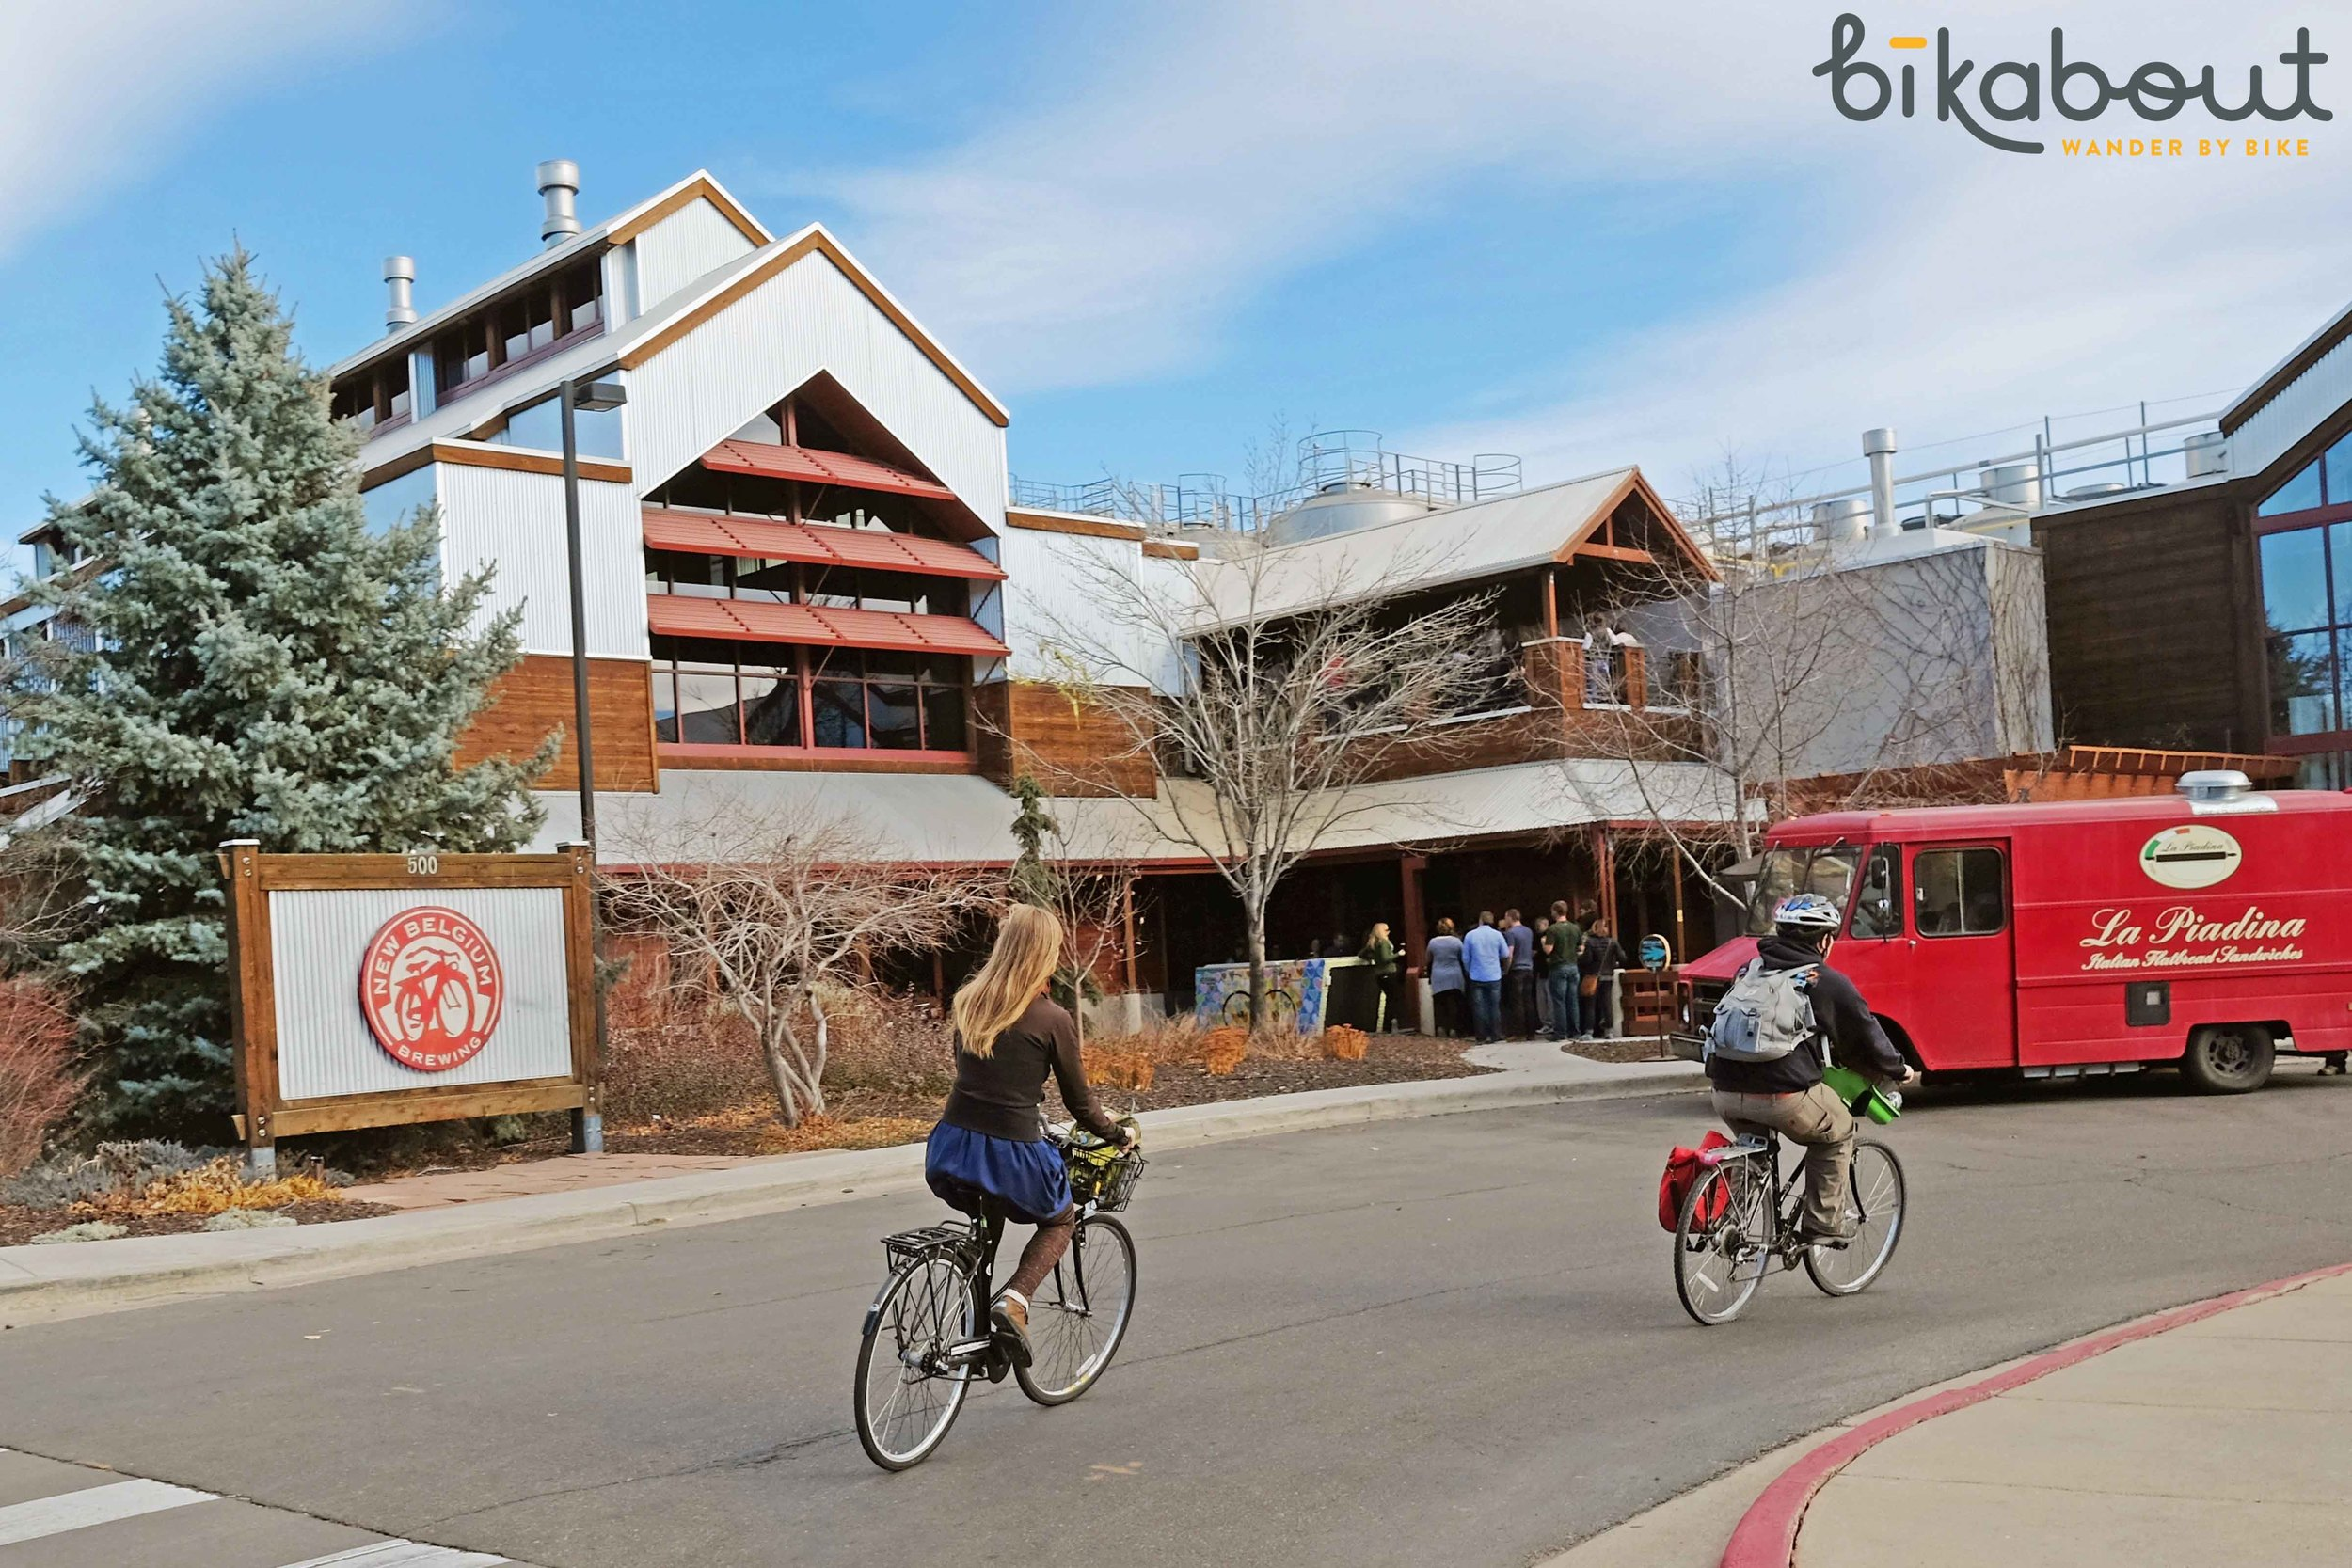 New Belgium Brewery, the original bike friendly brewery located in Fort Collins, CO.